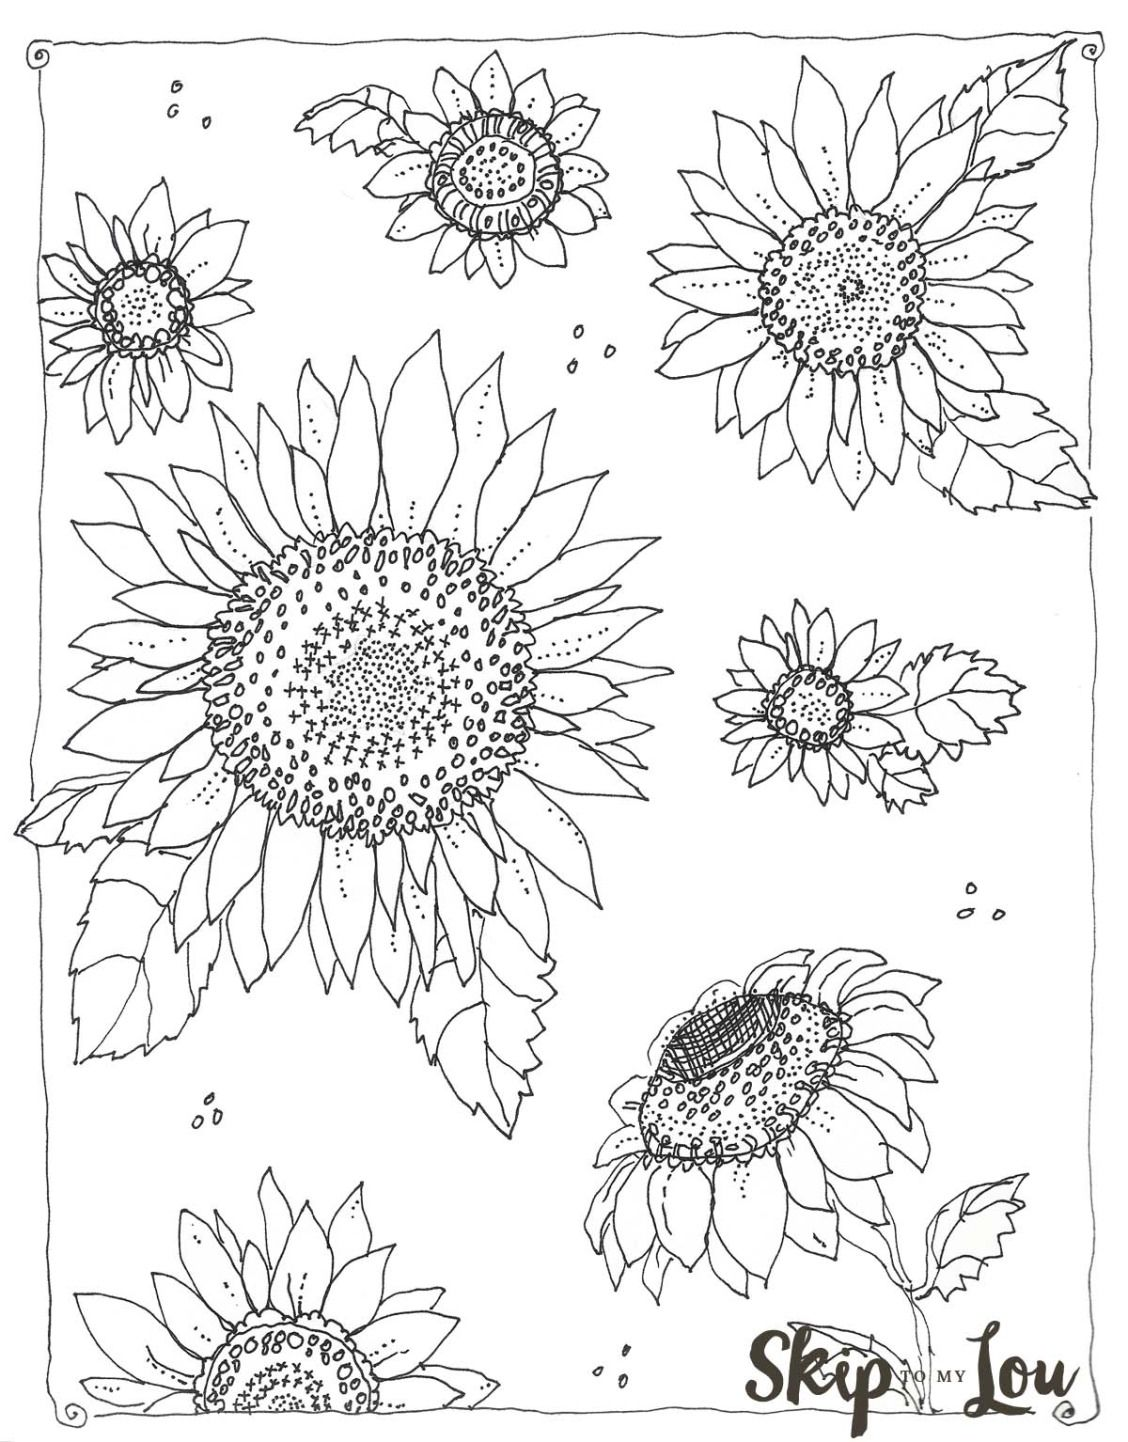 kansas day freensunflower coloring page from